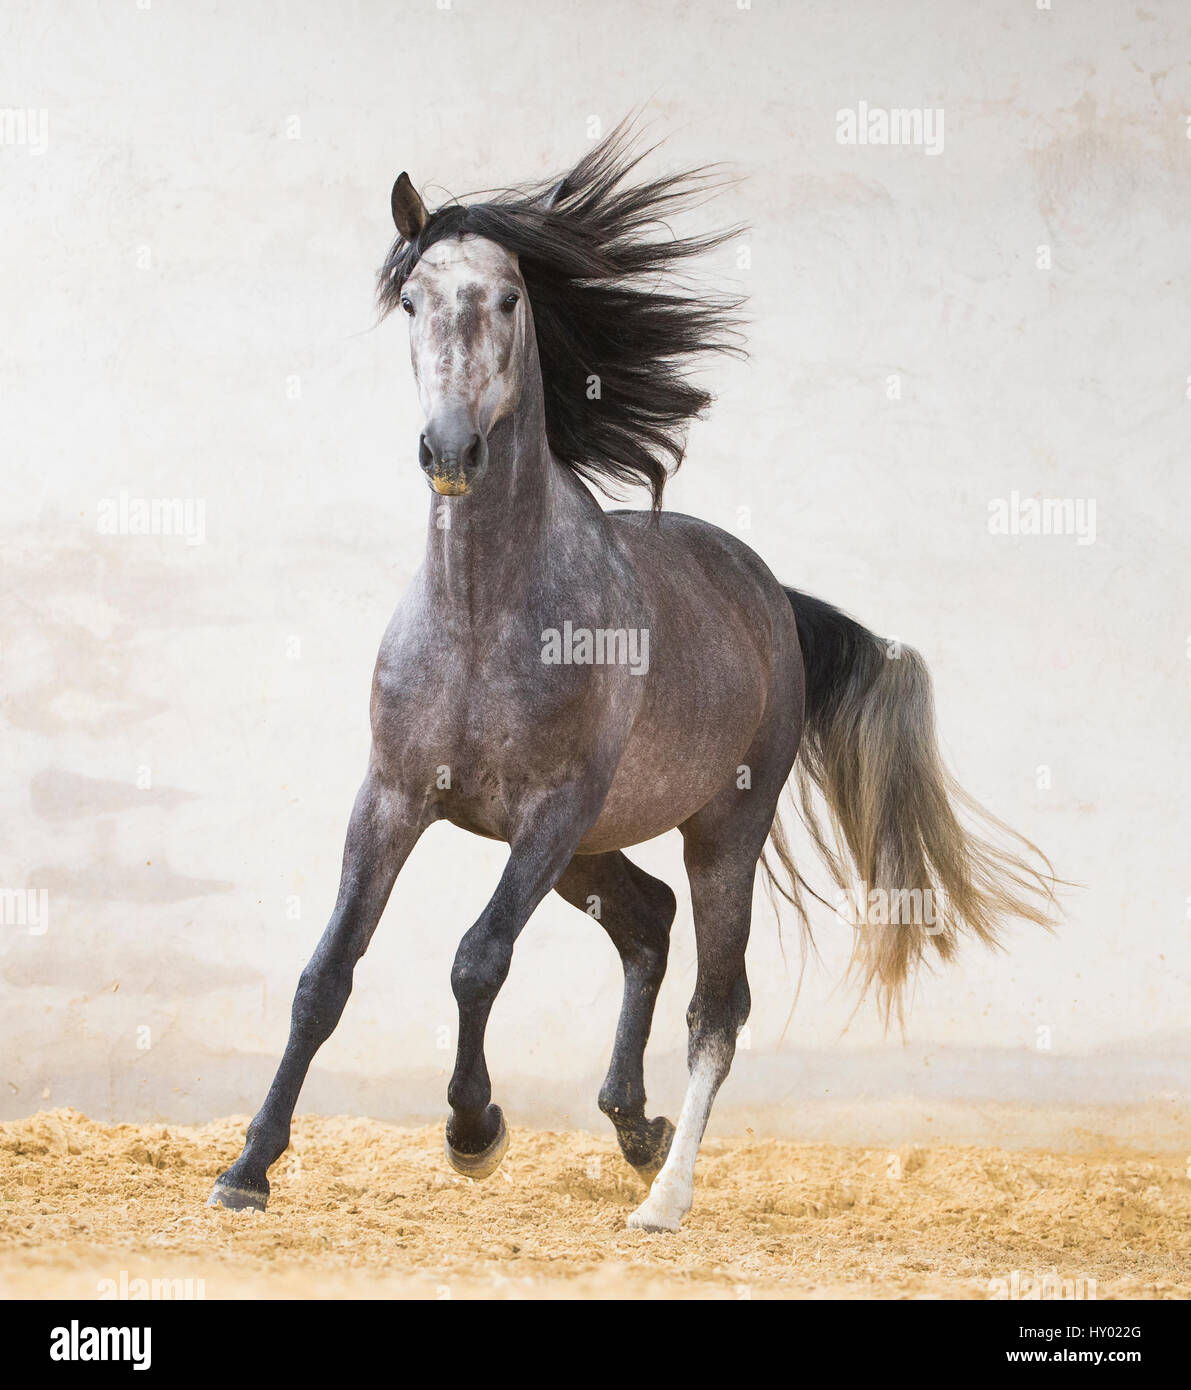 Dapple grey Andalusian stallion running in arena, Northern France, Europe. March. - Stock Image